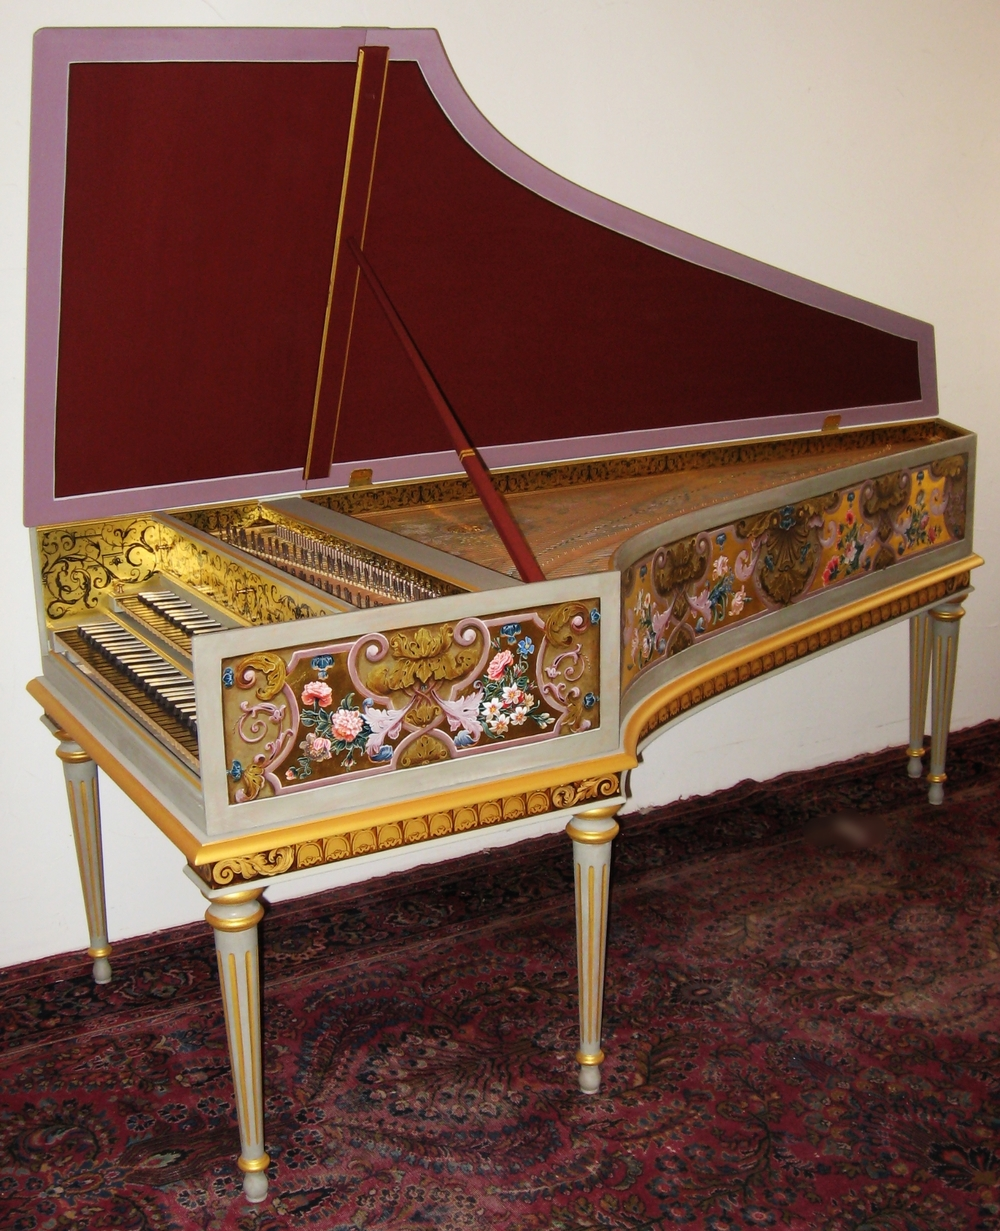 Harpsichord after f. blanchet in paris, france my opus 3 9 8 made in 2 0 0 8 belongs to Elizabeth Farr in boulder, colorado